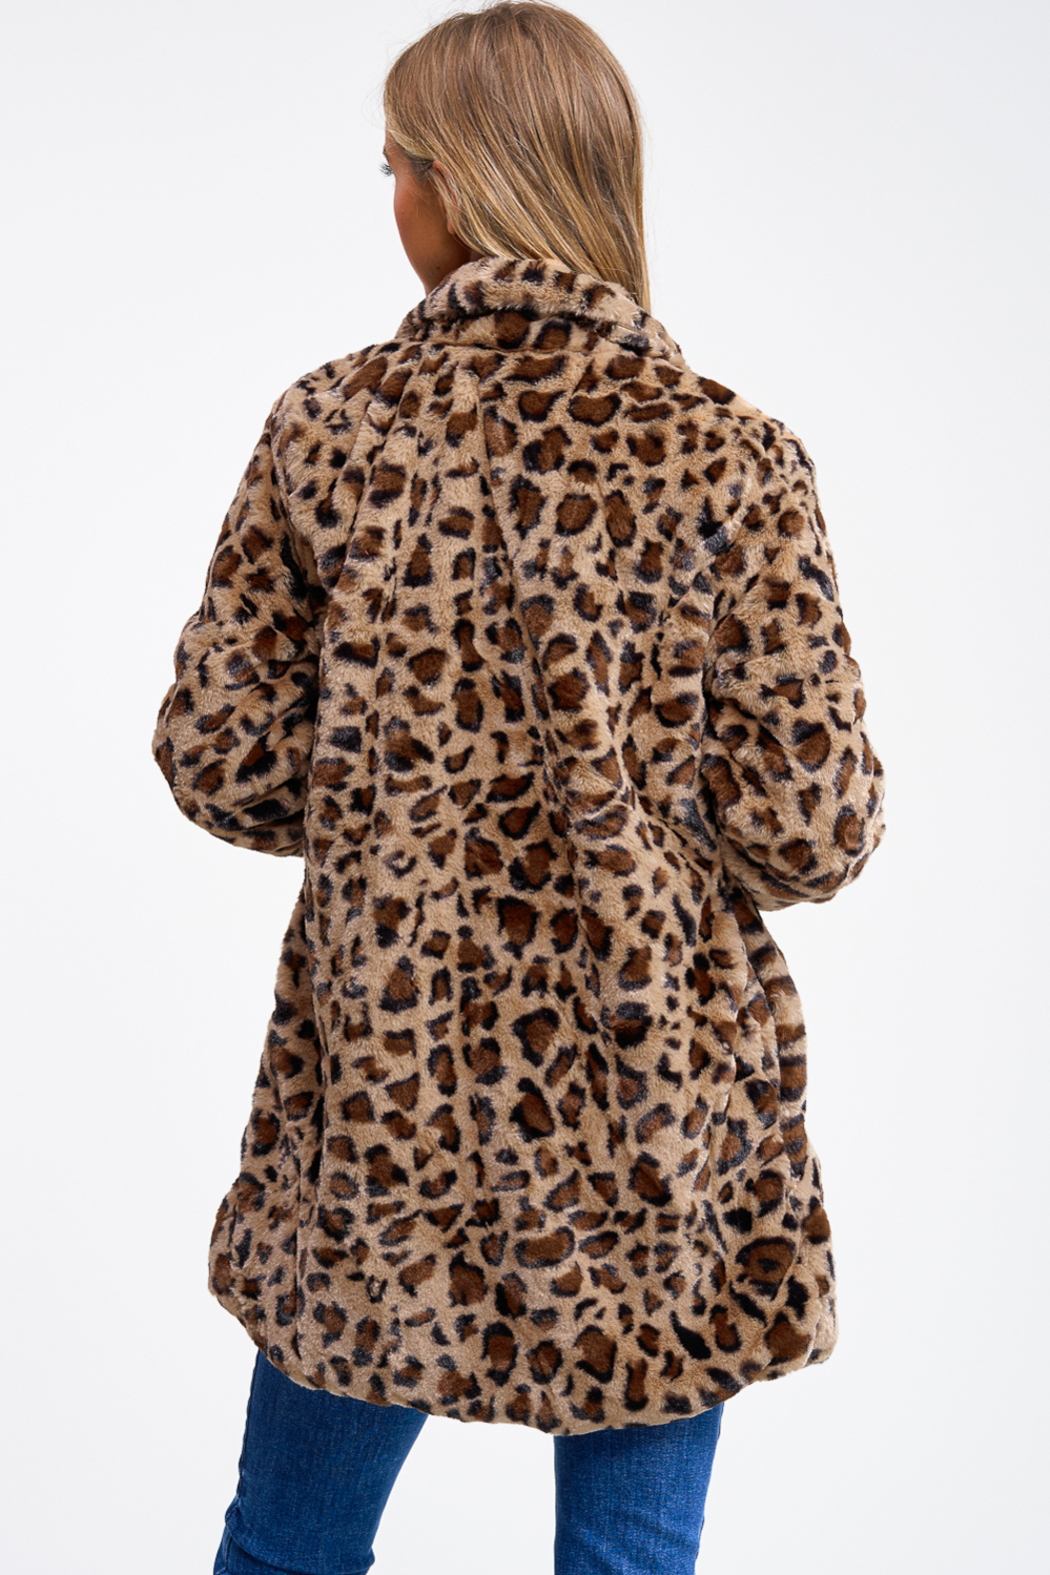 MONTREZ CHEETAH PRINT FAUX FUR COAT - Back Cropped Image